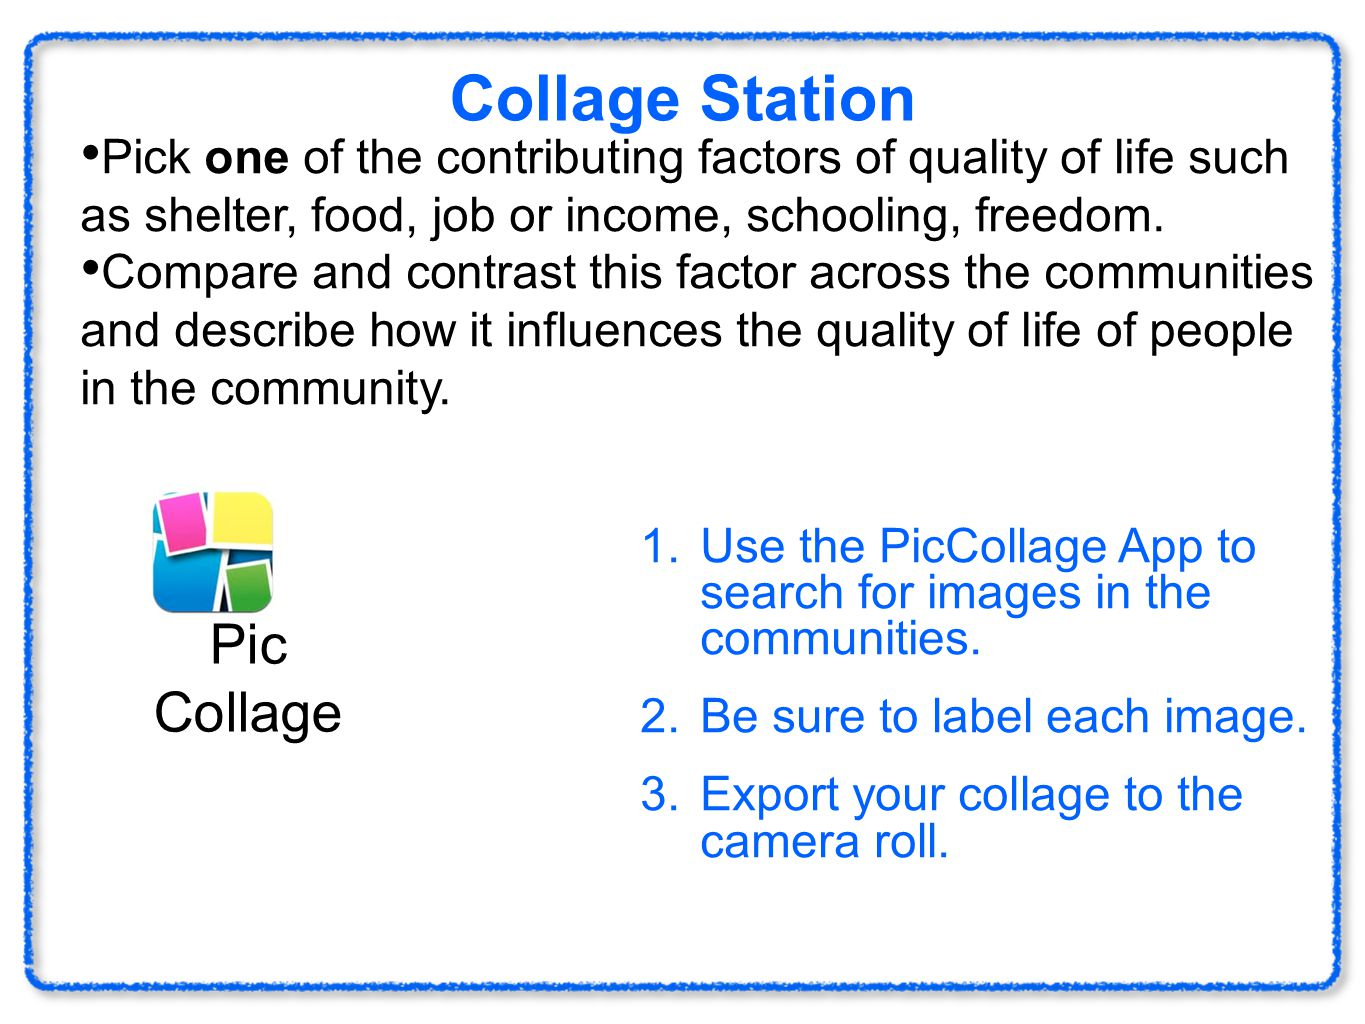 Collage Station Pick one of the contributing factors of quality of life such as shelter, food, job or income, schooling, freedom.